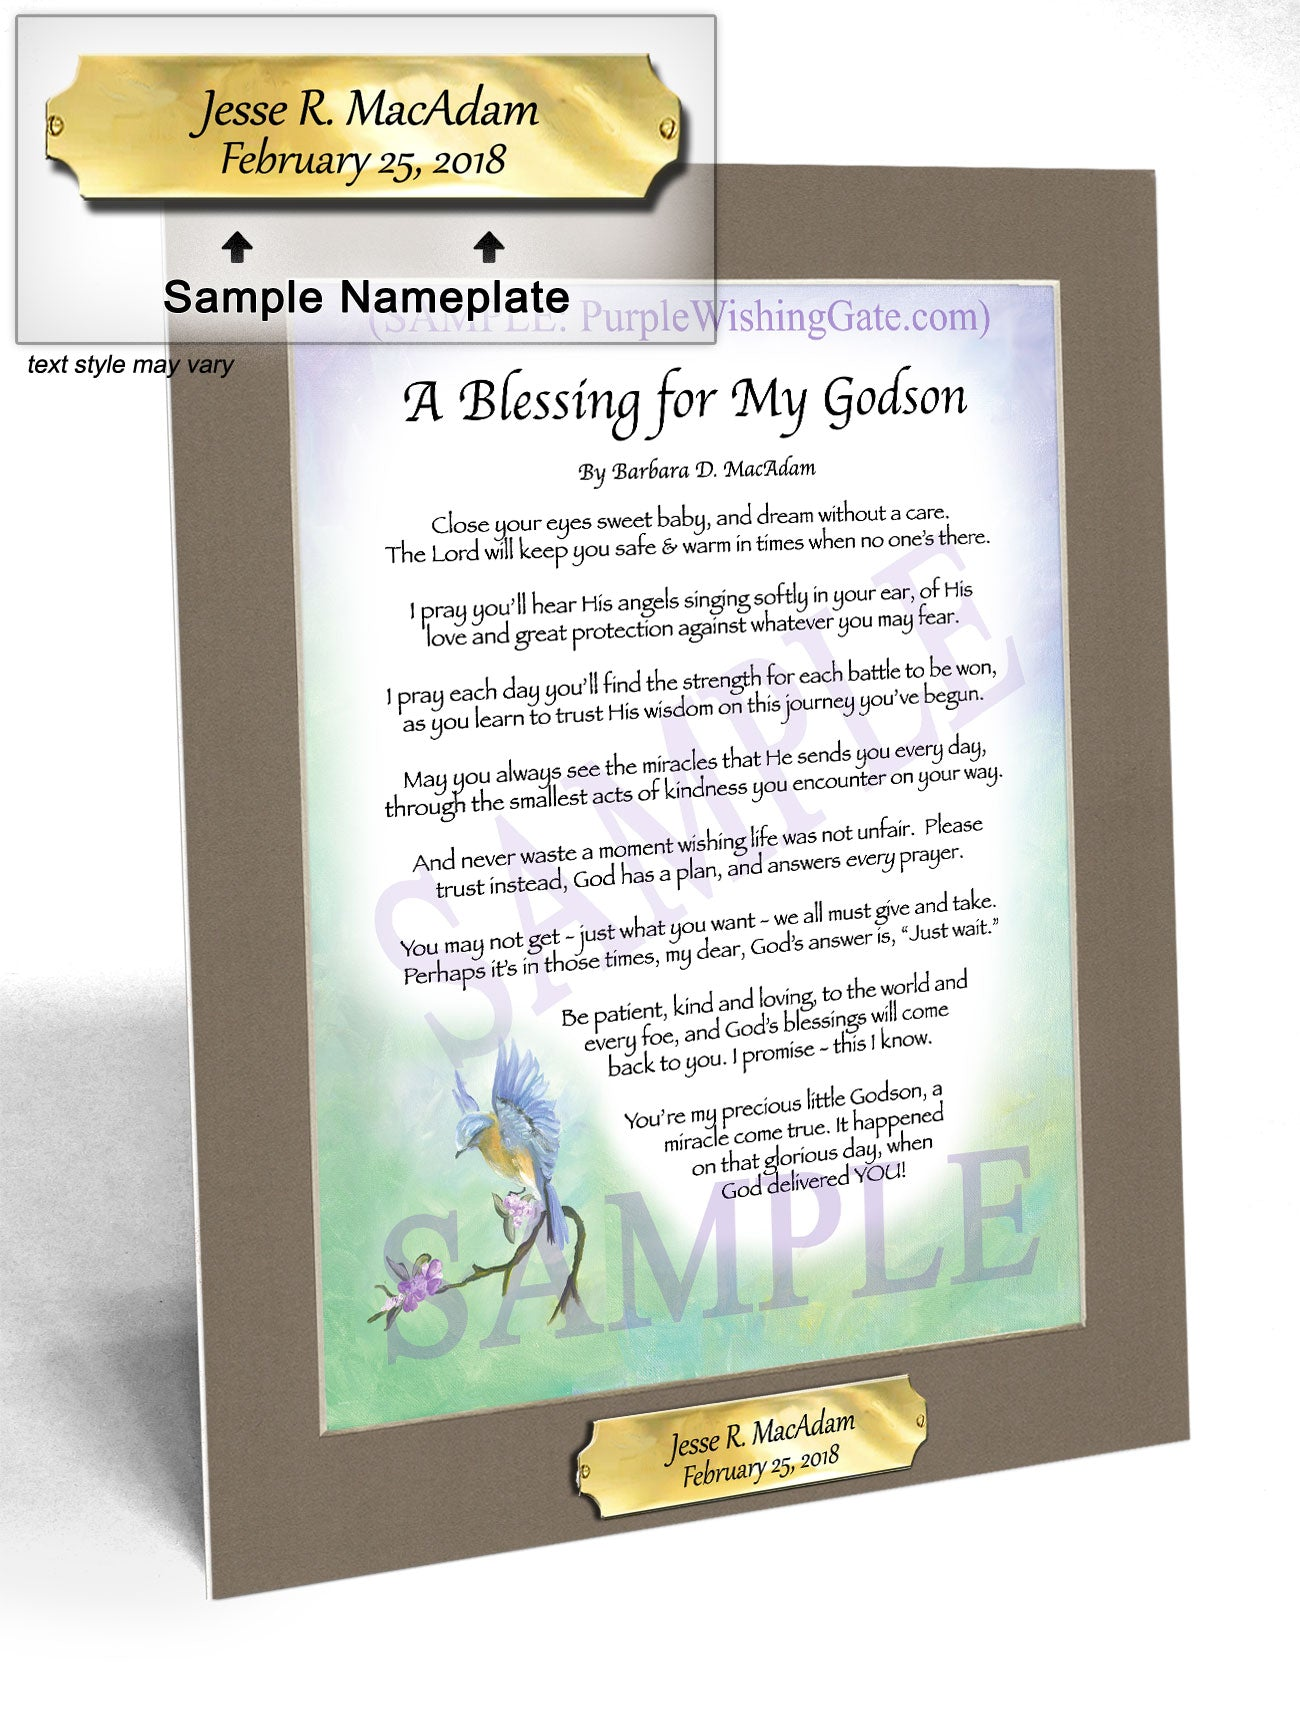 A Blessing for My Godson (baby) - Baby Gift - PurpleWishingGate.com